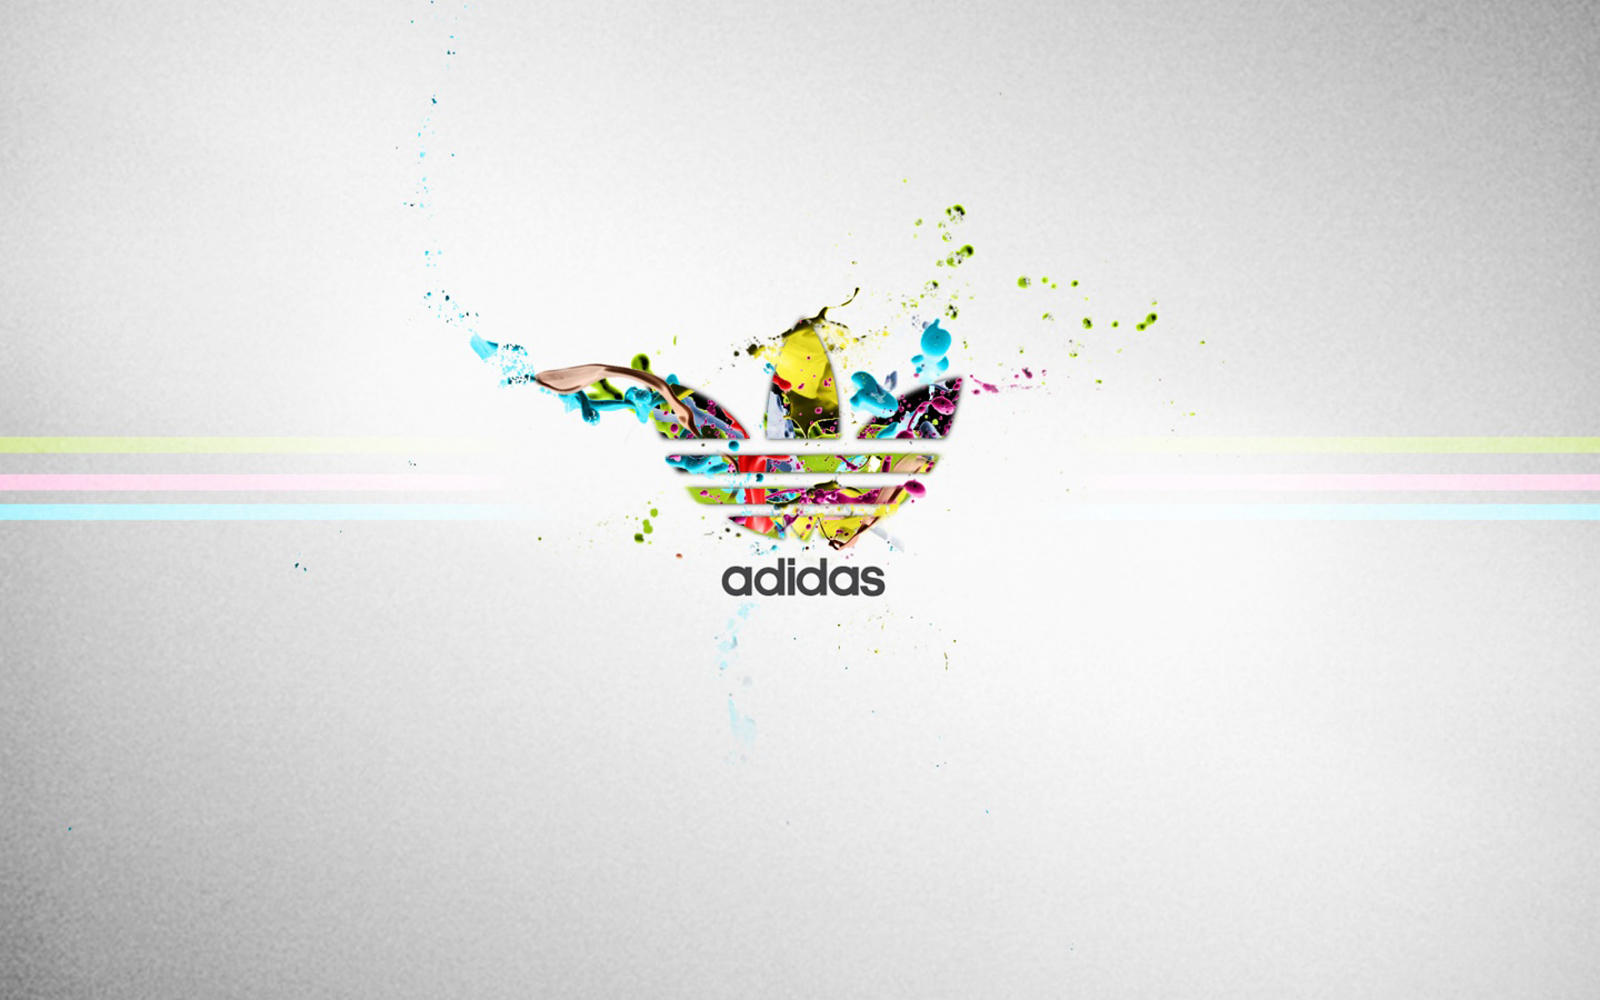 Adidas Logo HD Wallpapers| HD Wallpapers ,Backgrounds ,Photos ,Pictures, Image ,PC